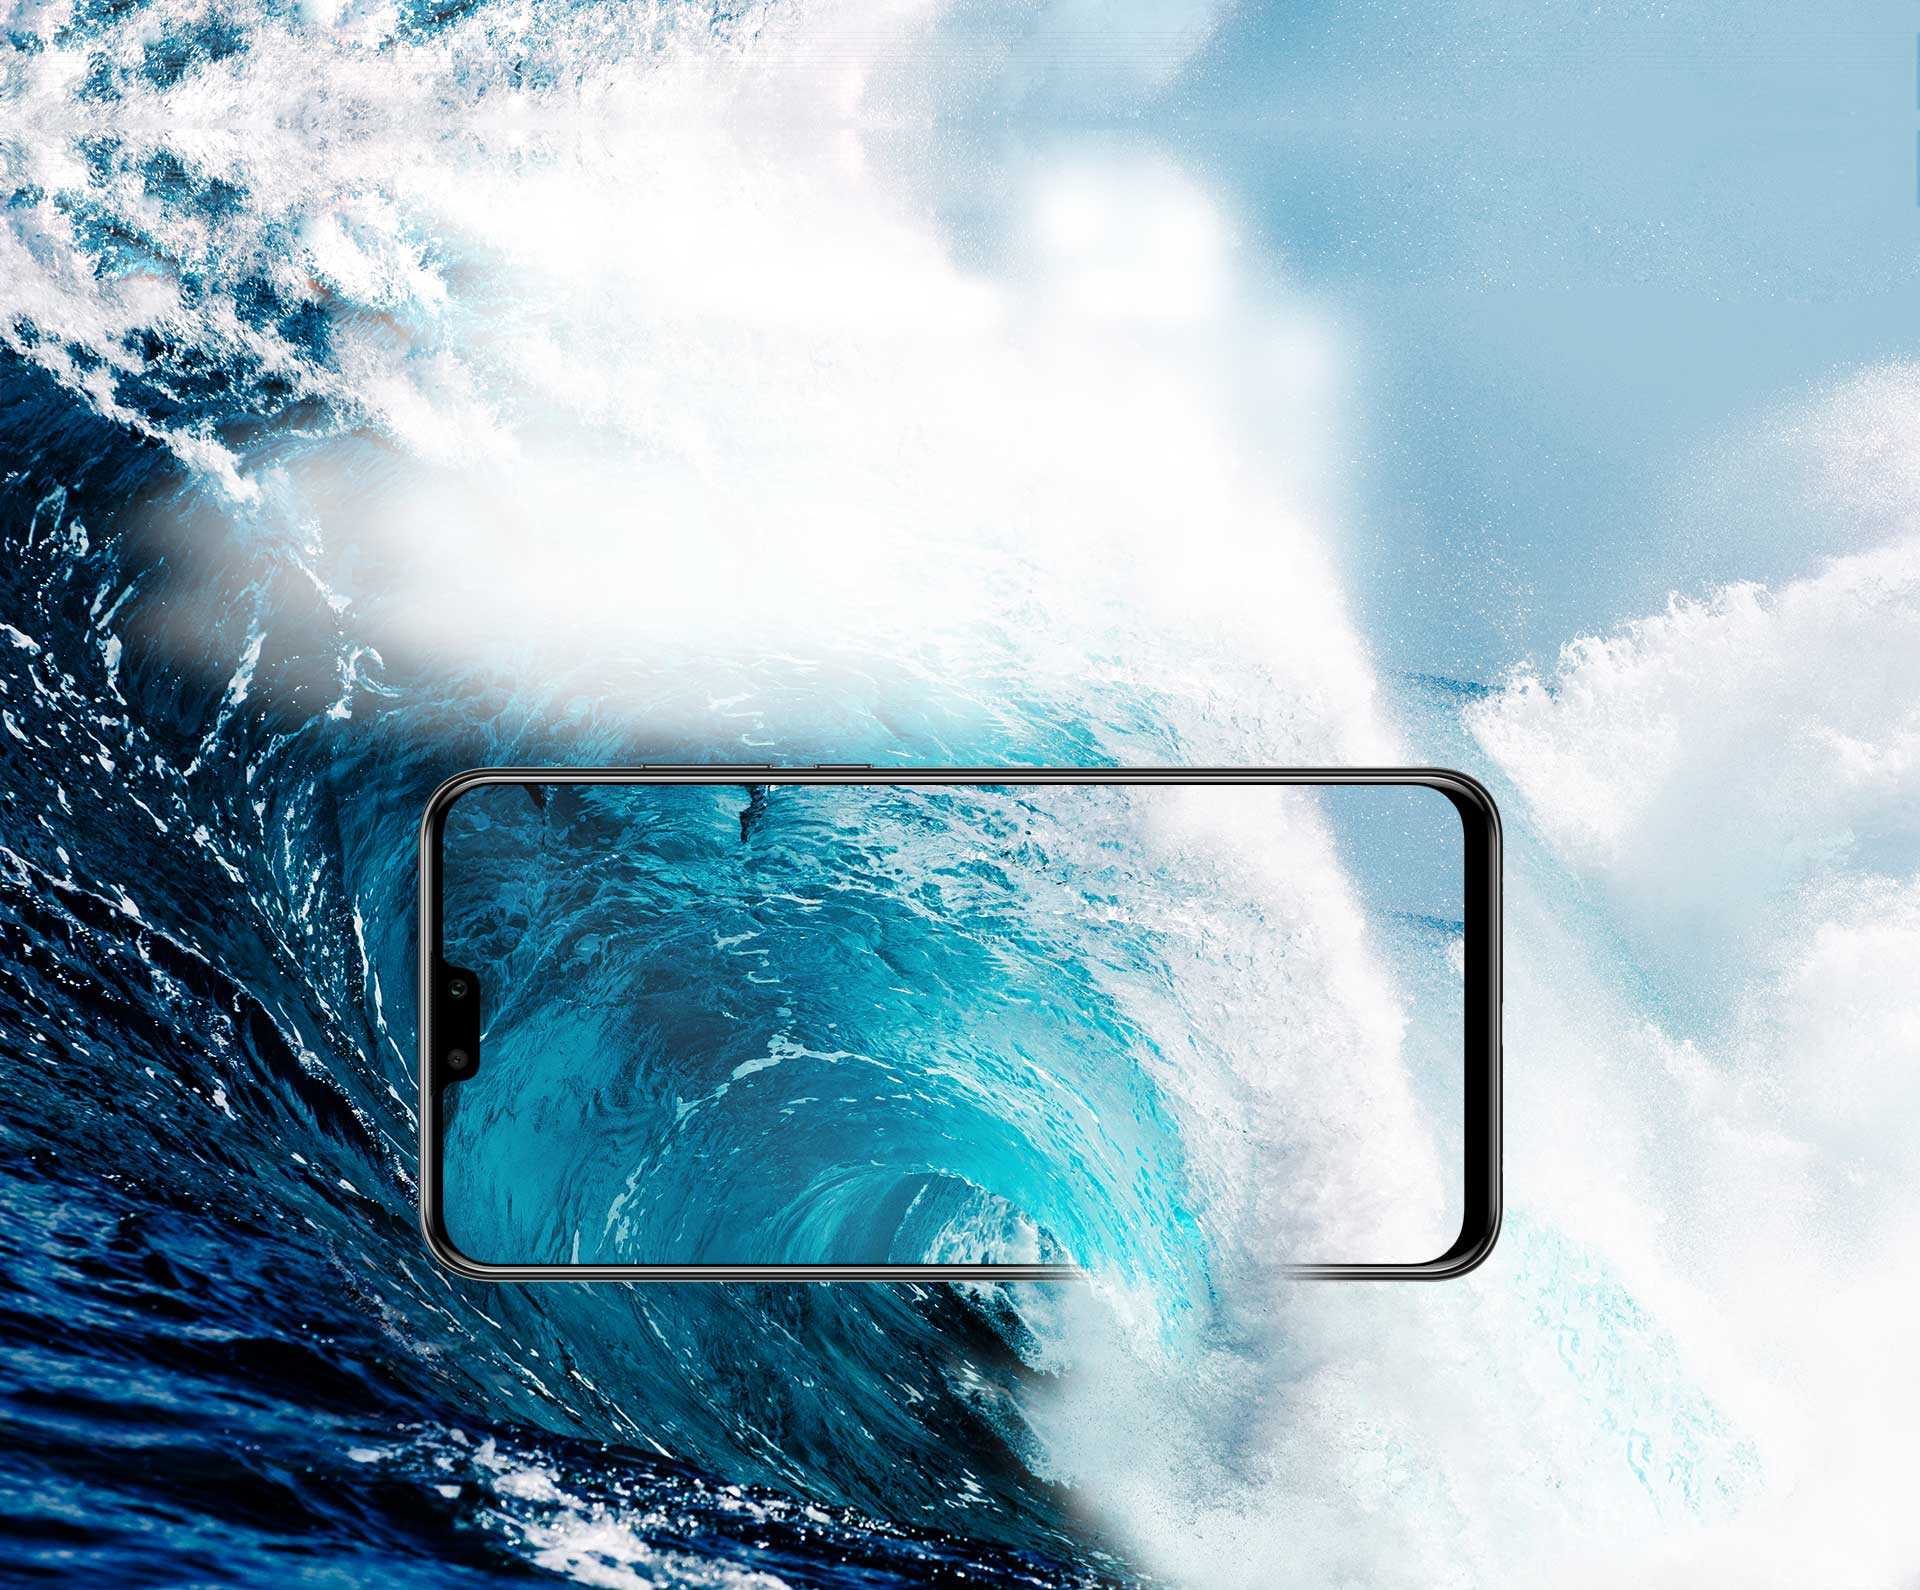 HUAWEI Y9 2019 Fullview Display